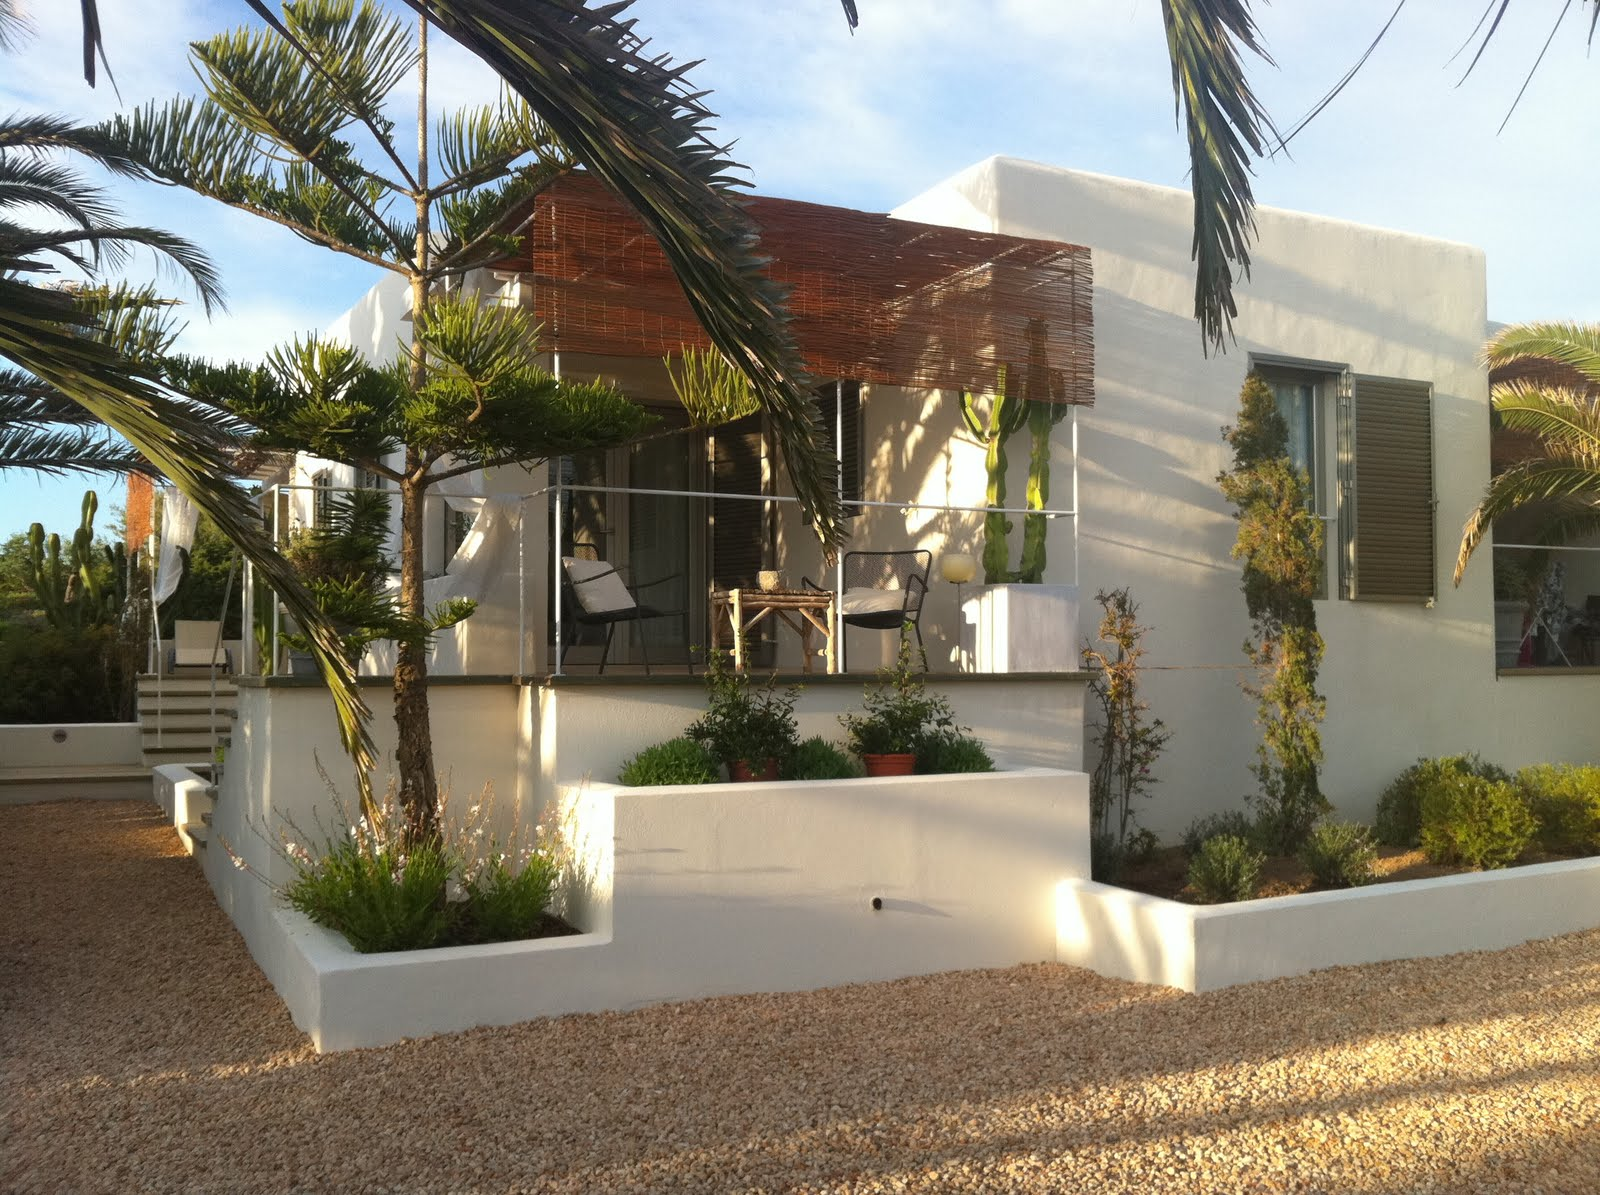 Fyi cool hotels in formentera for Funky hotels uk